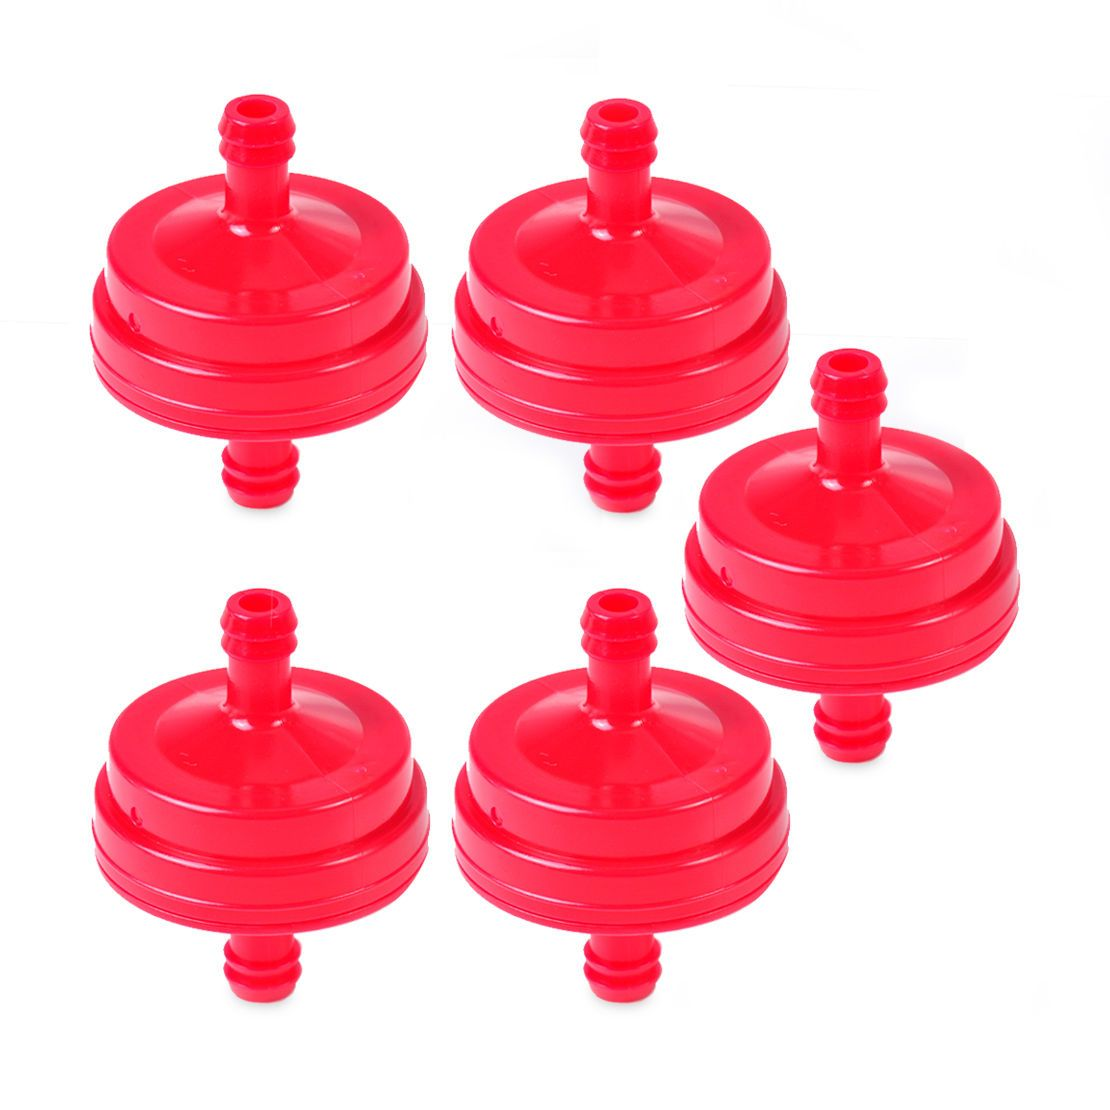 small resolution of  2 5 5x 1 4 red inline fuel filter replacement 298090 fit for briggs stratton ebay home garden